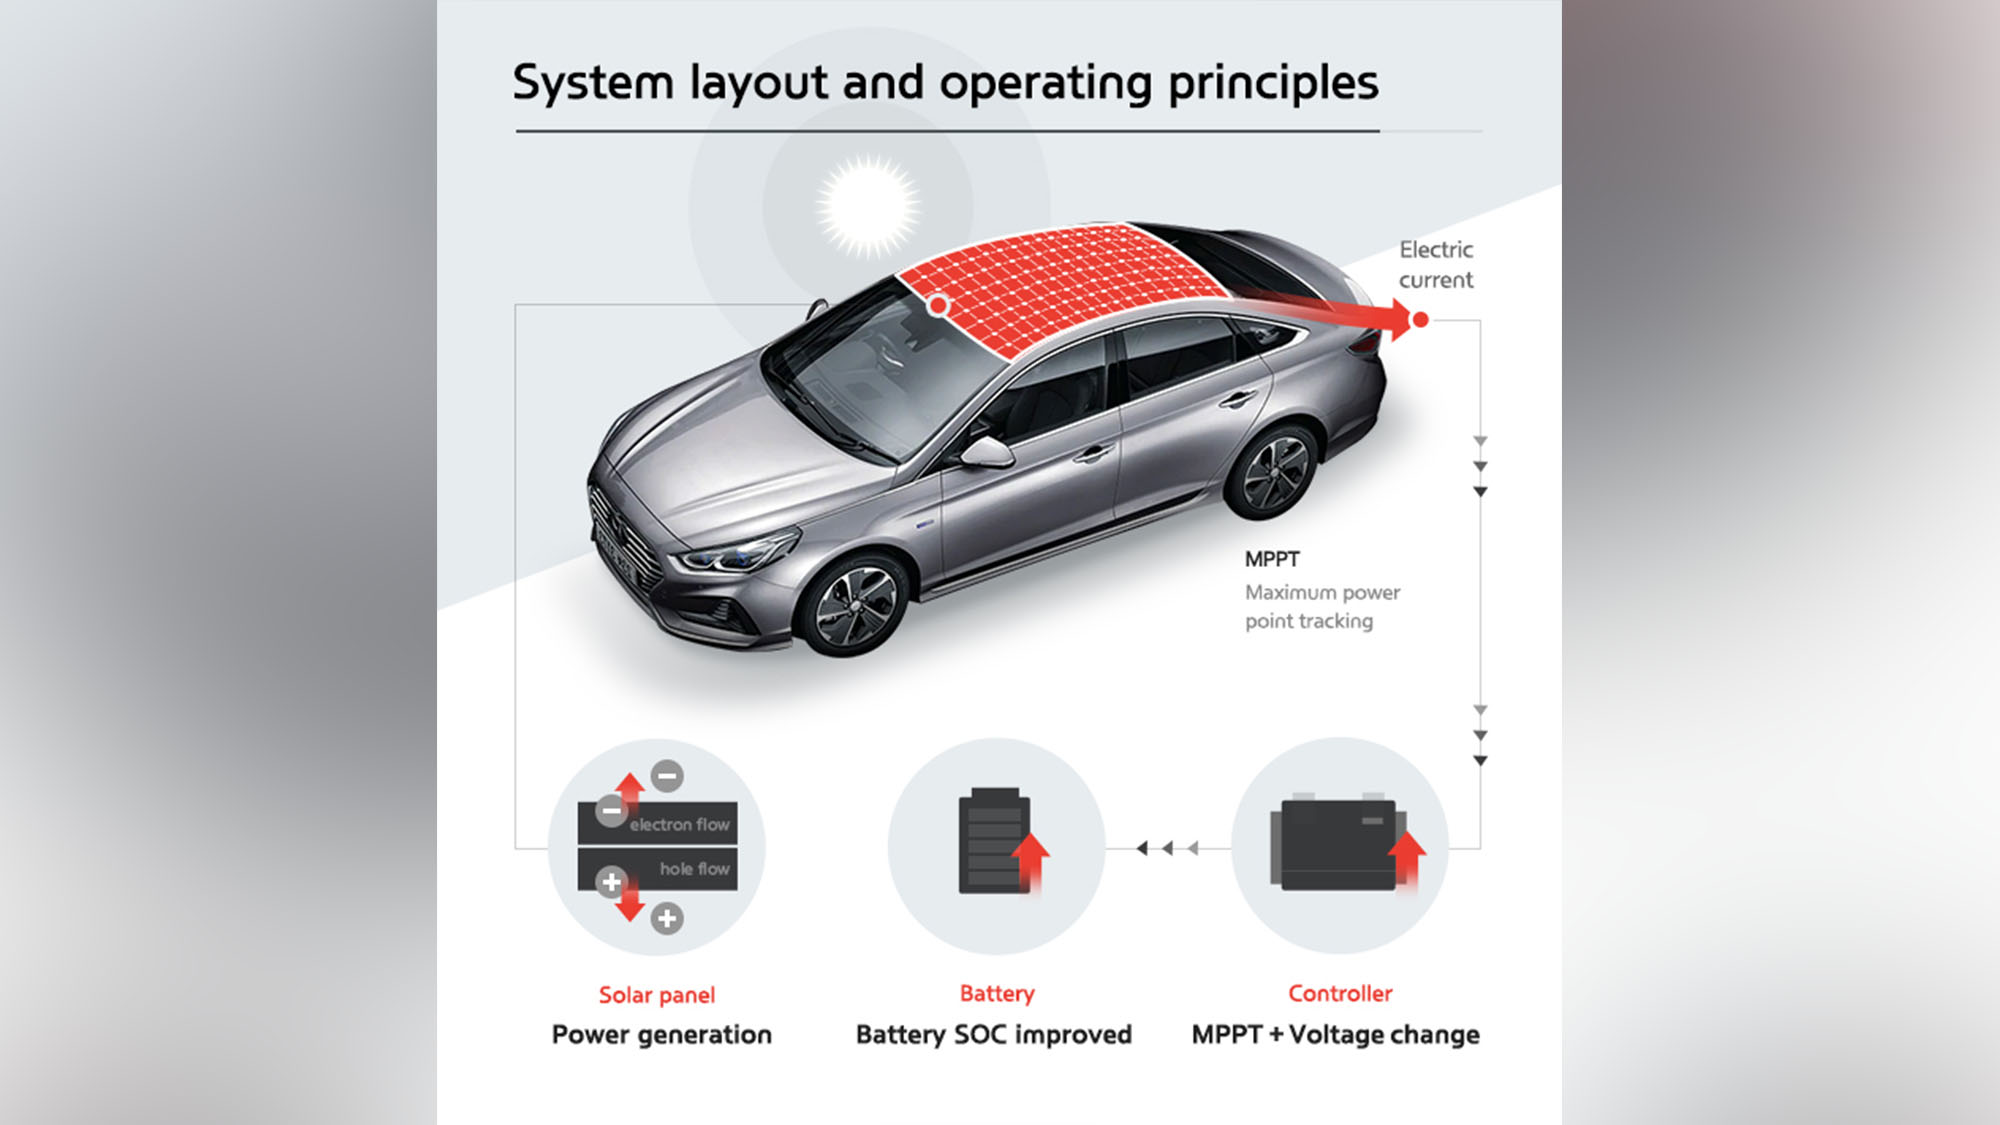 Hyundai, Kia to fit cars with solar roof technology from 2019